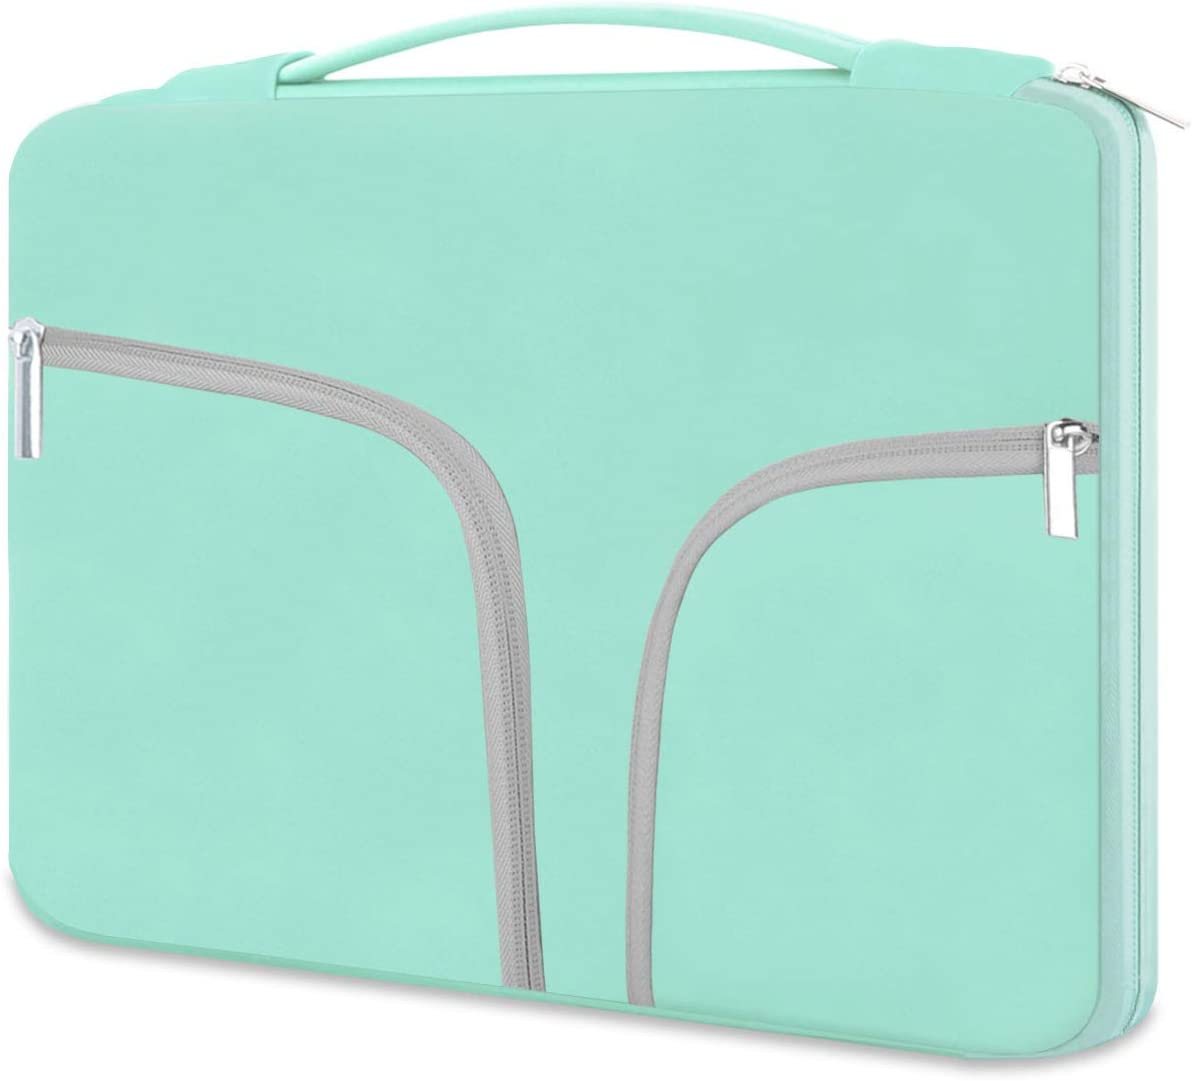 Amazon Com Hestech Chromebook Case 14 Inch Ultrabook Notebook Carrying Handbag Protective Sleeve Bag For Macbook Pro 16 15 4 14 15 6 Dell Lenovo Hp Asus Acer Samsung Sony Computer Laptop Mint Green Office Products